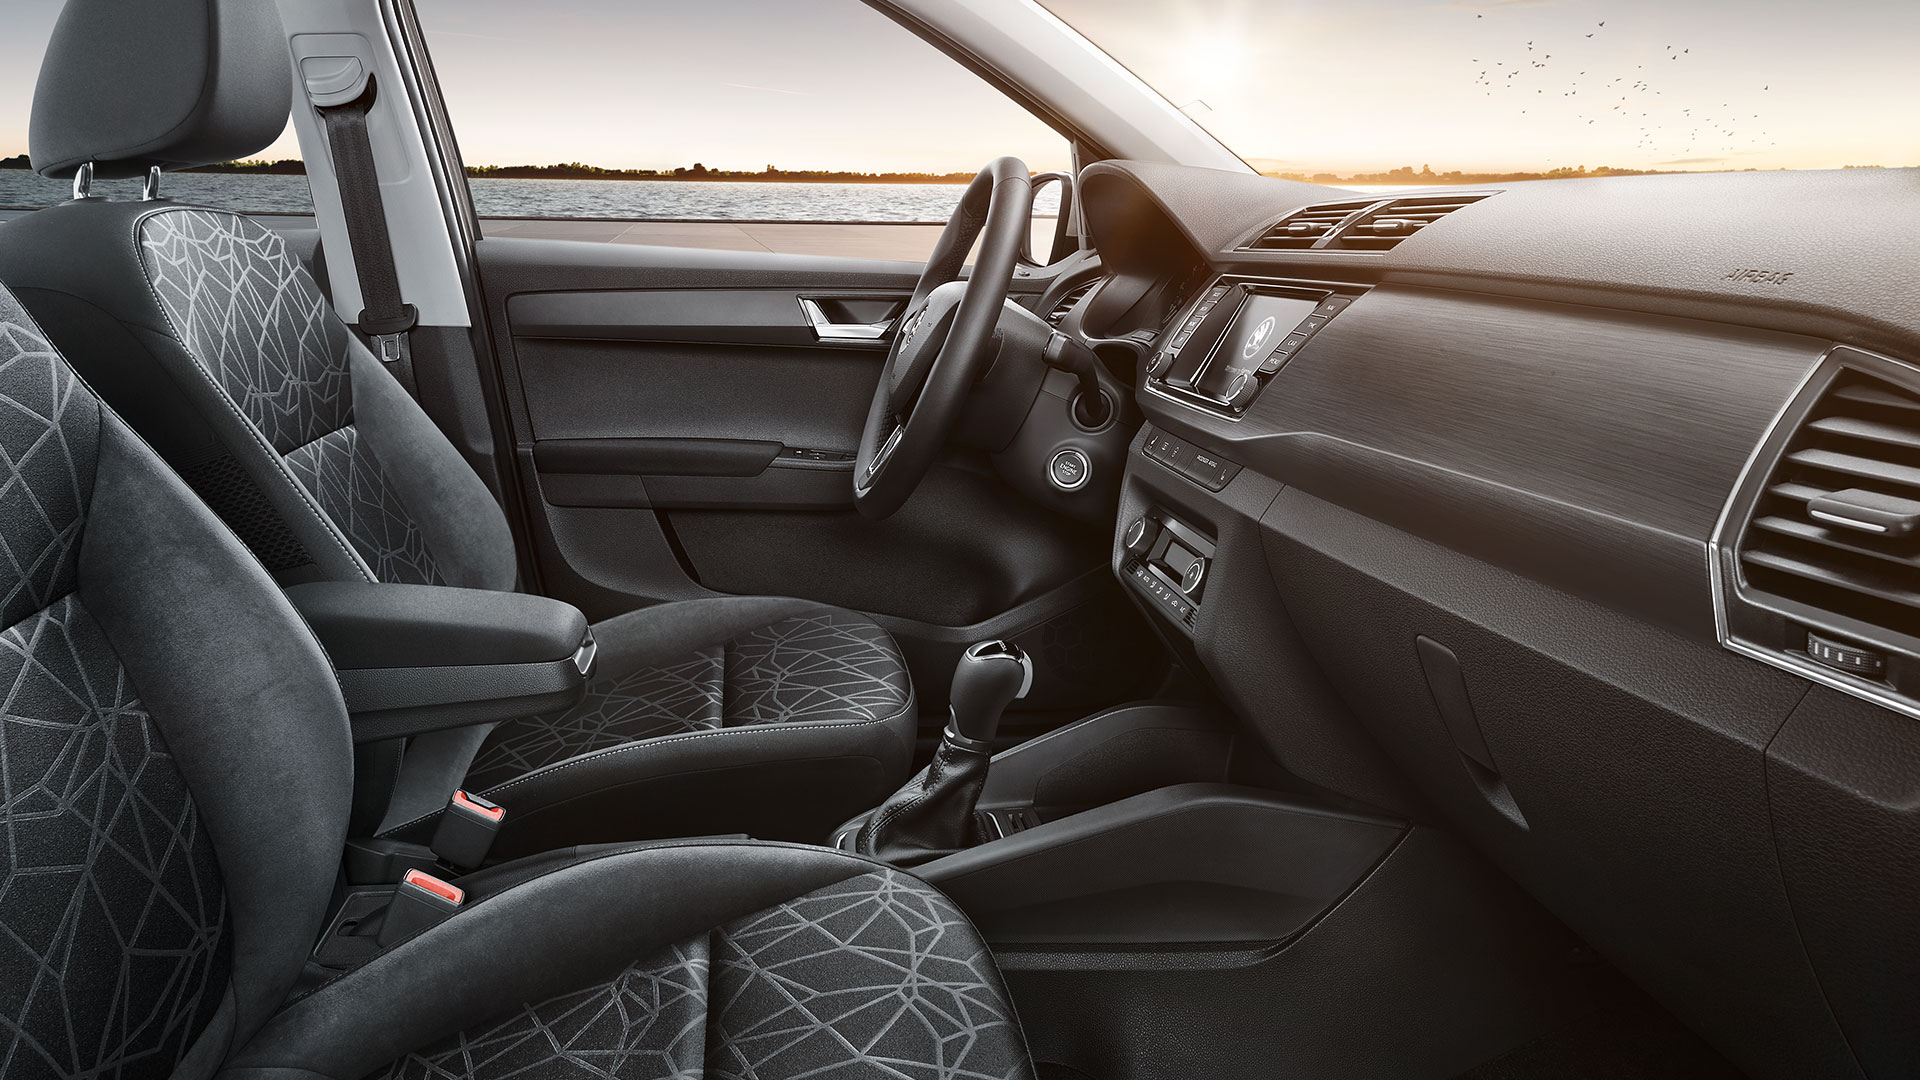 bl-ip-7__01__interieur-clever-fabia